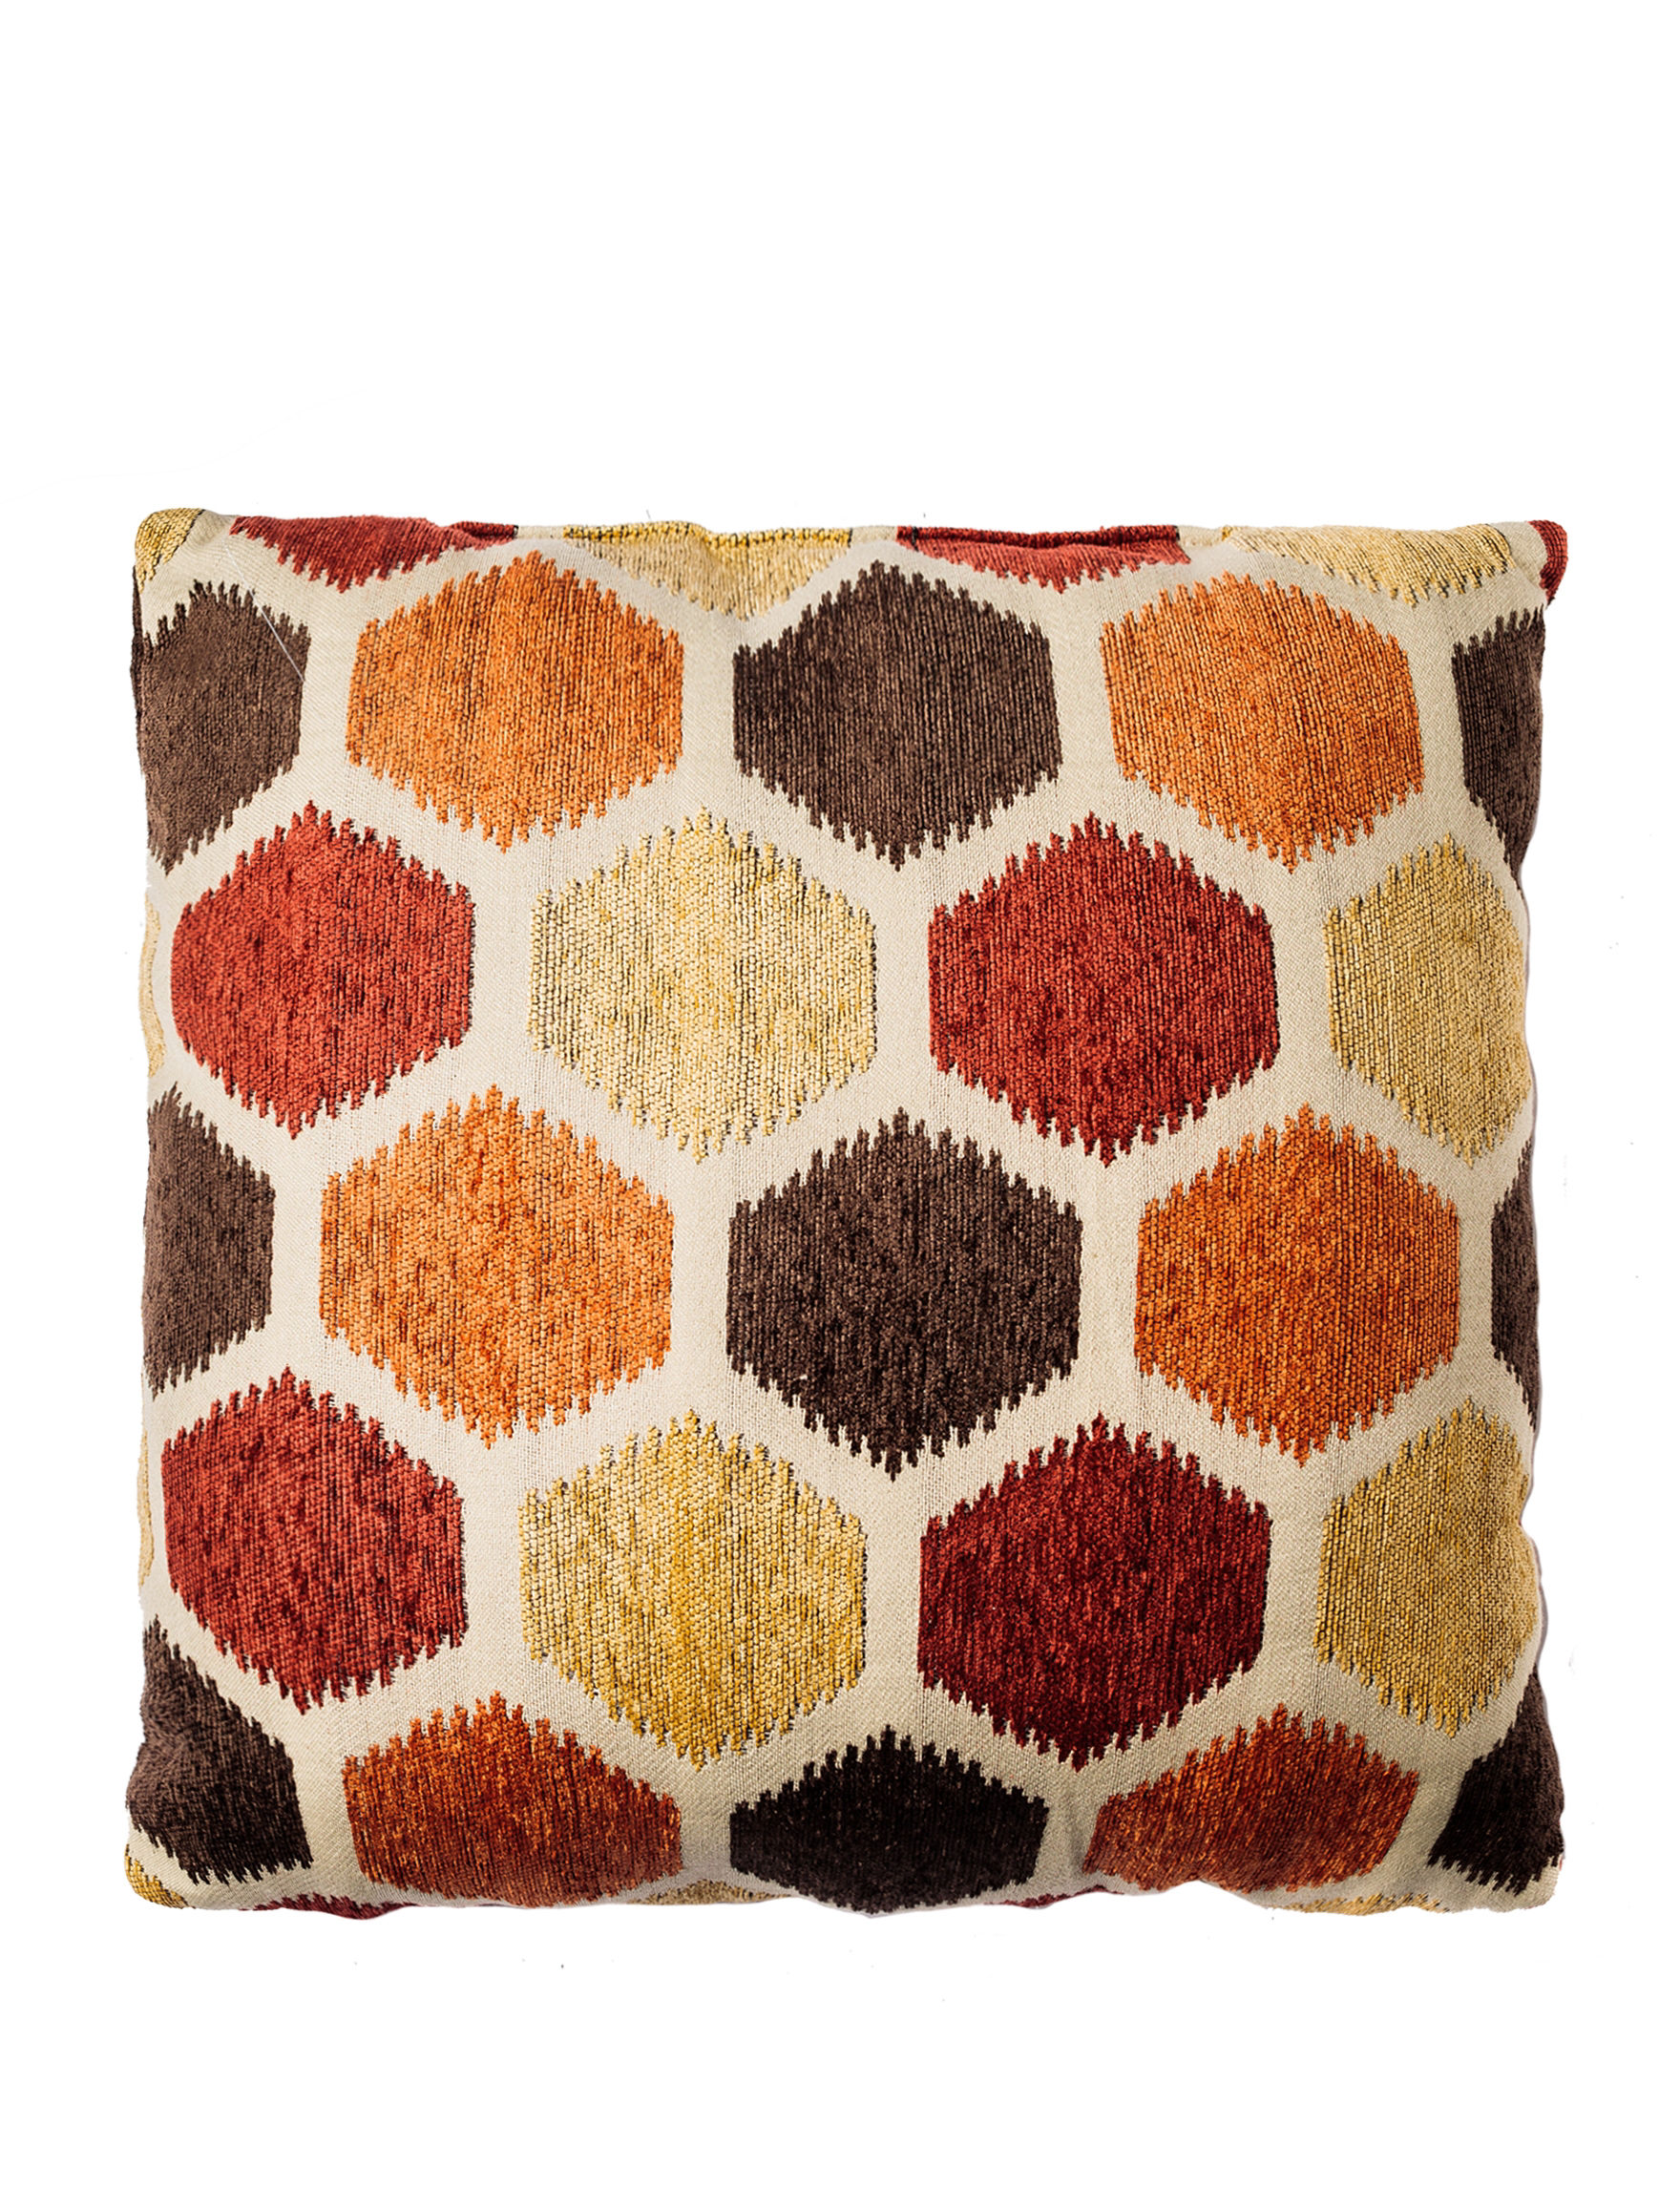 Home Fashions International Burnt Red/ Tan Decorative Pillows